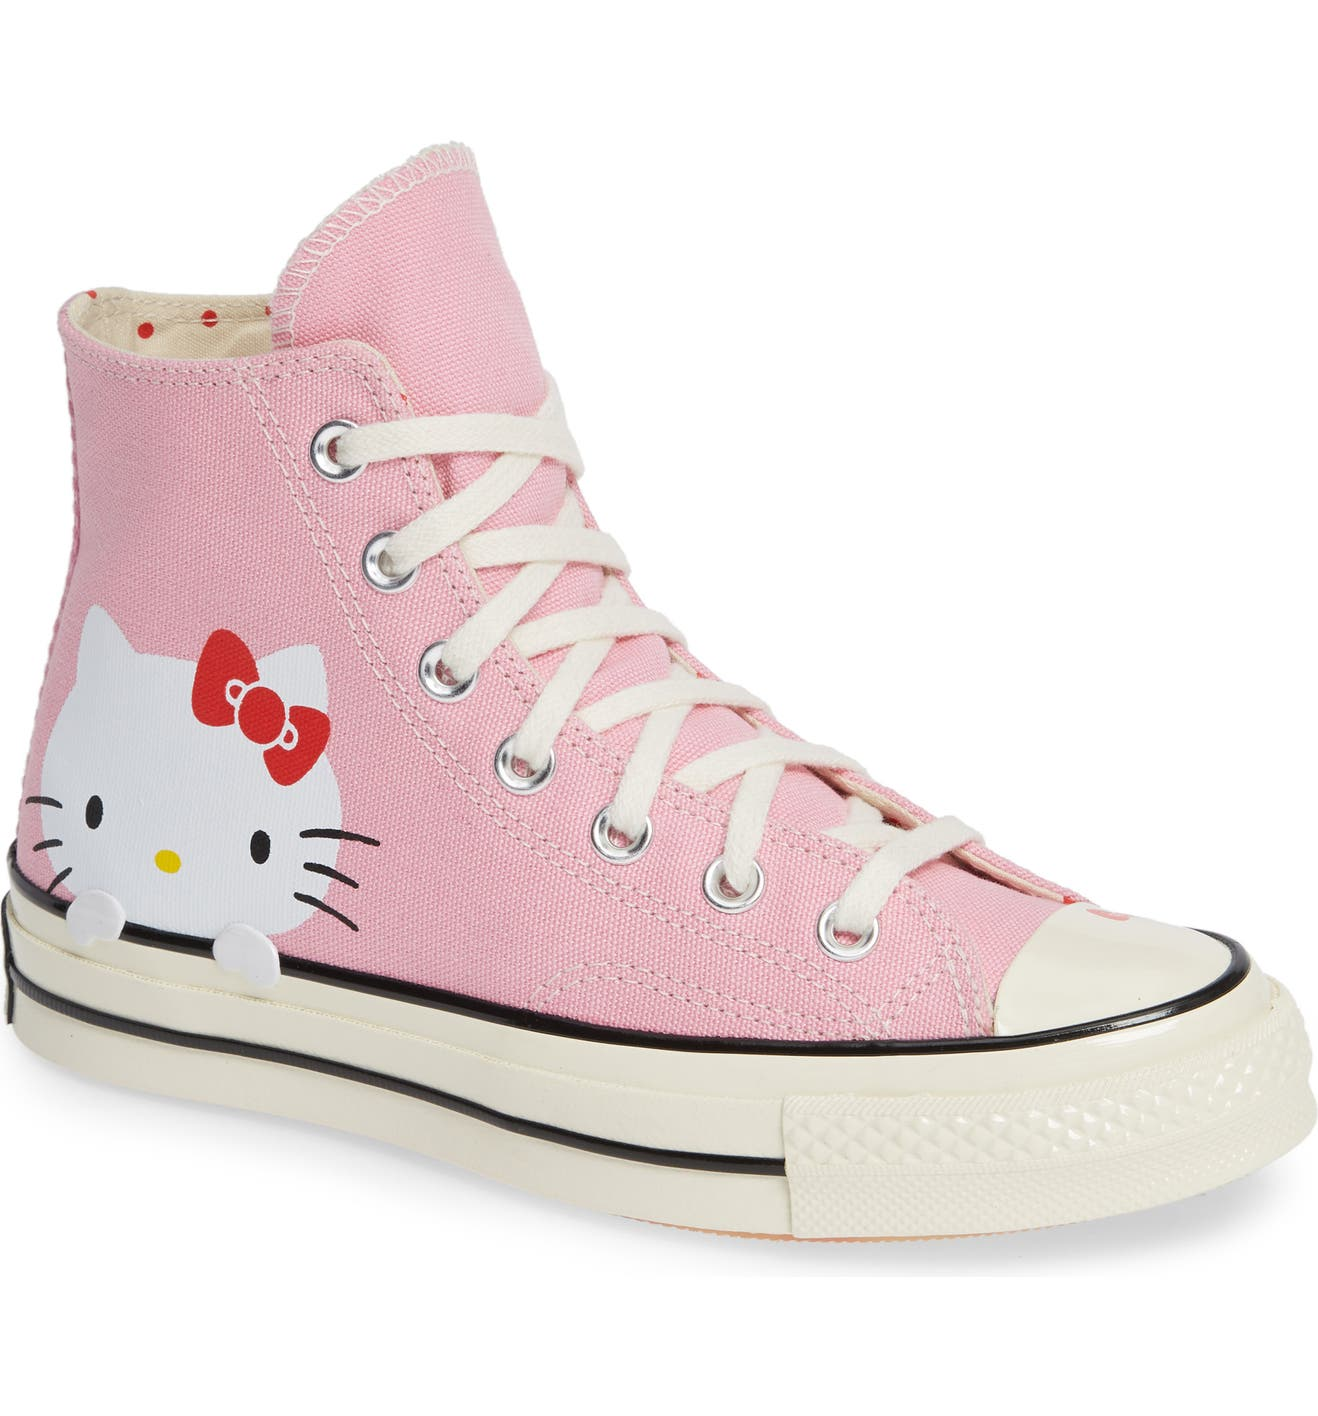 3c607504dff1 Converse Chuck Taylor® All Star® Hello Kitty CT 70 High Top Sneaker (Women)